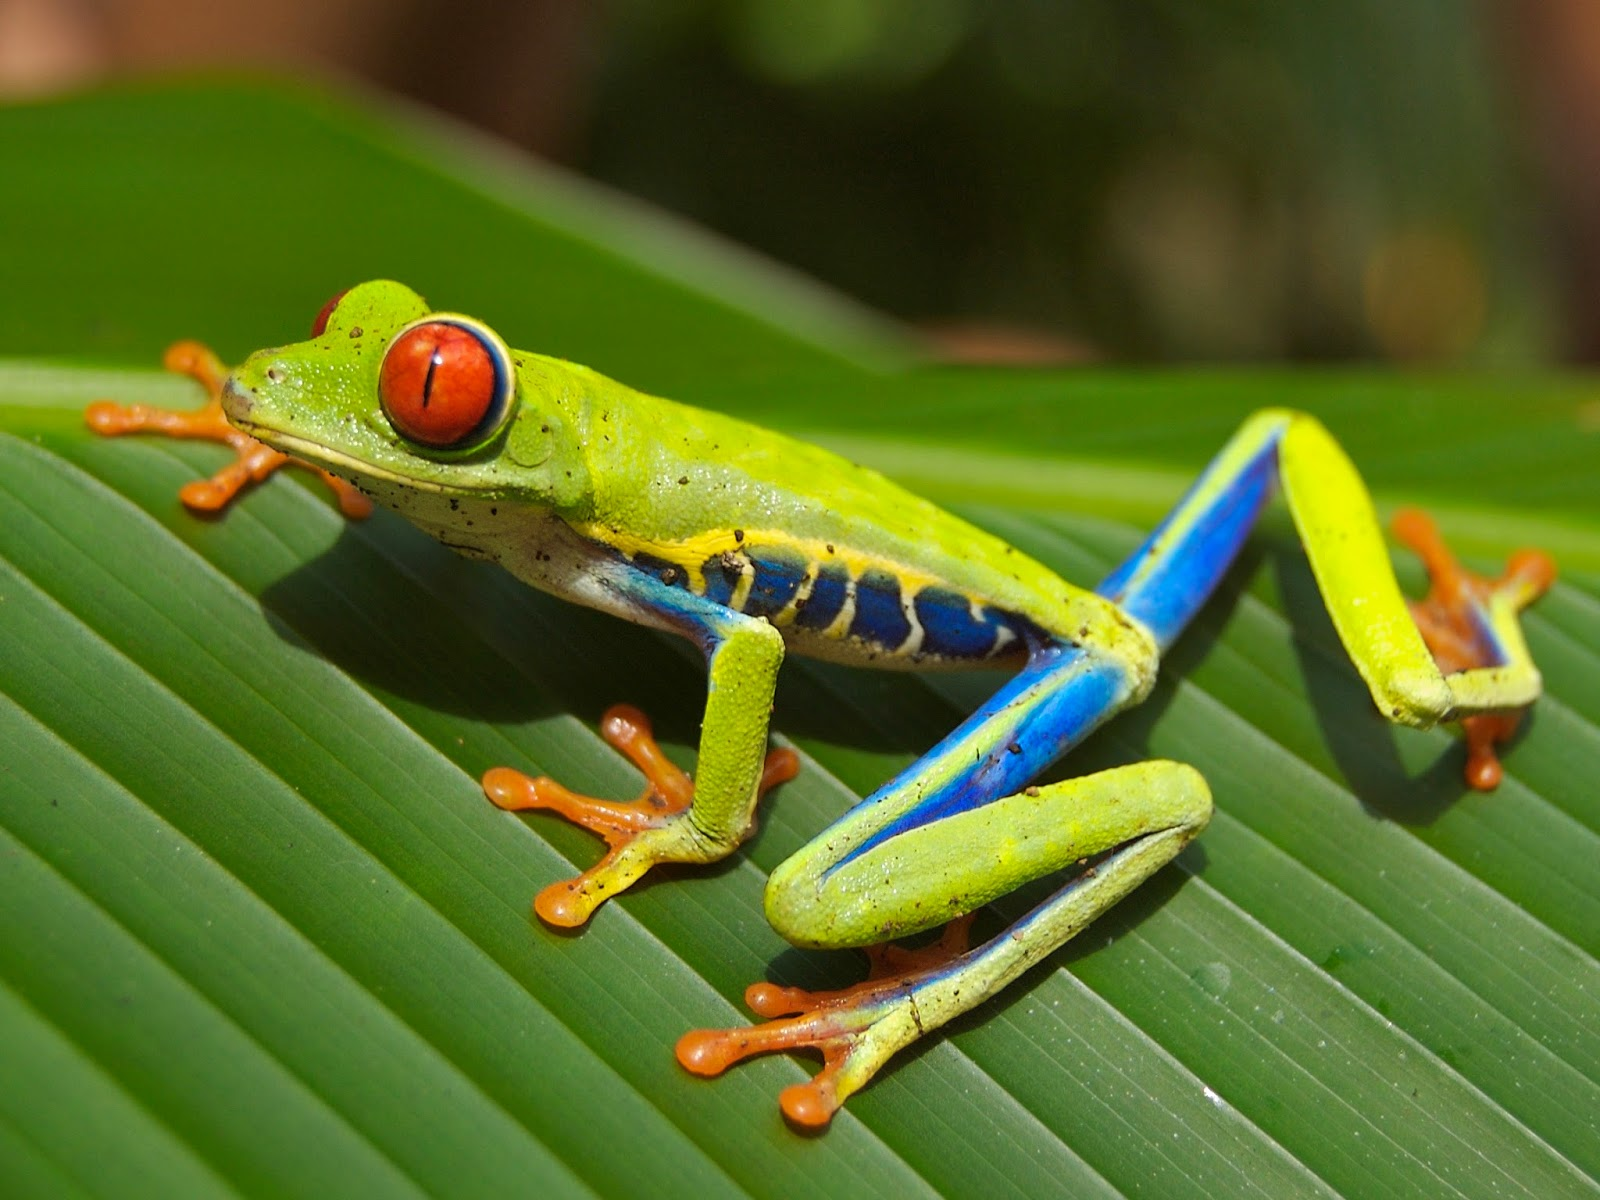 Amphibians: Red eyed tree frog